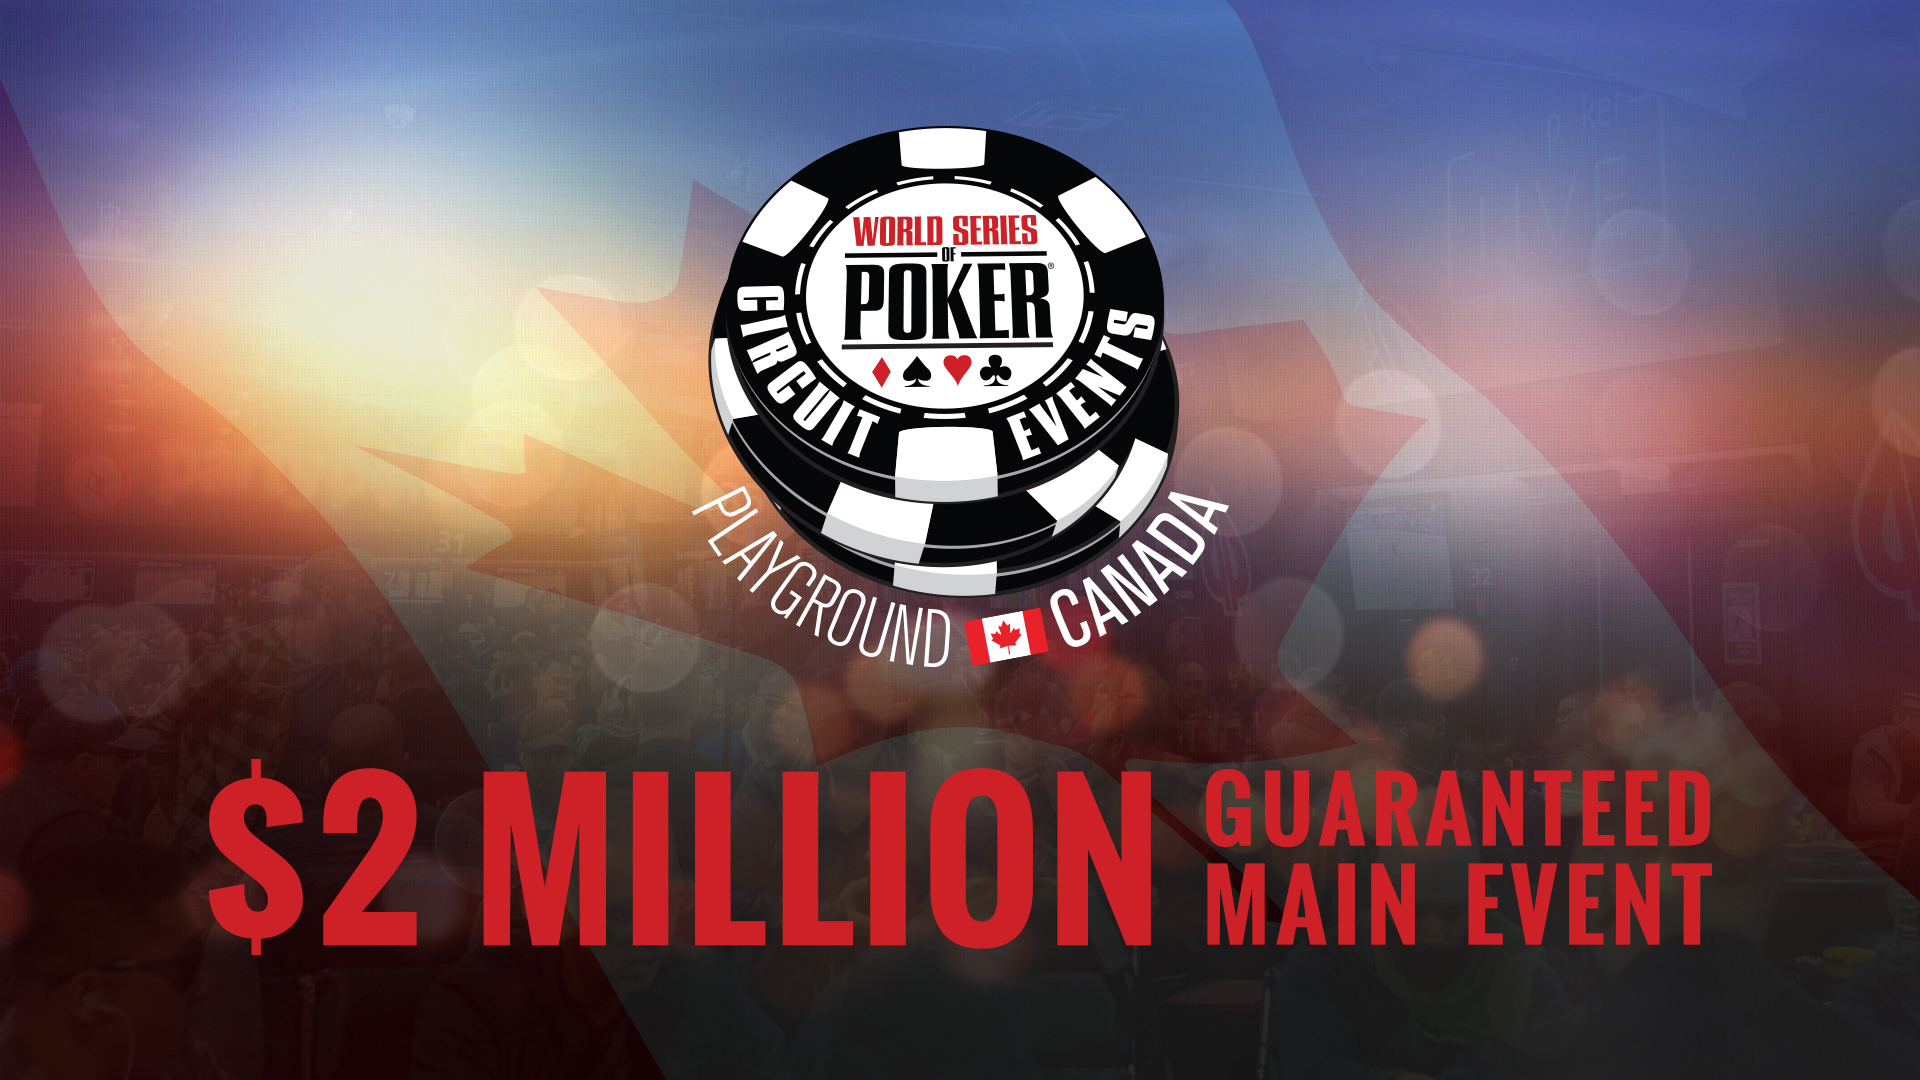 The World Series of Poker International Circuit returns